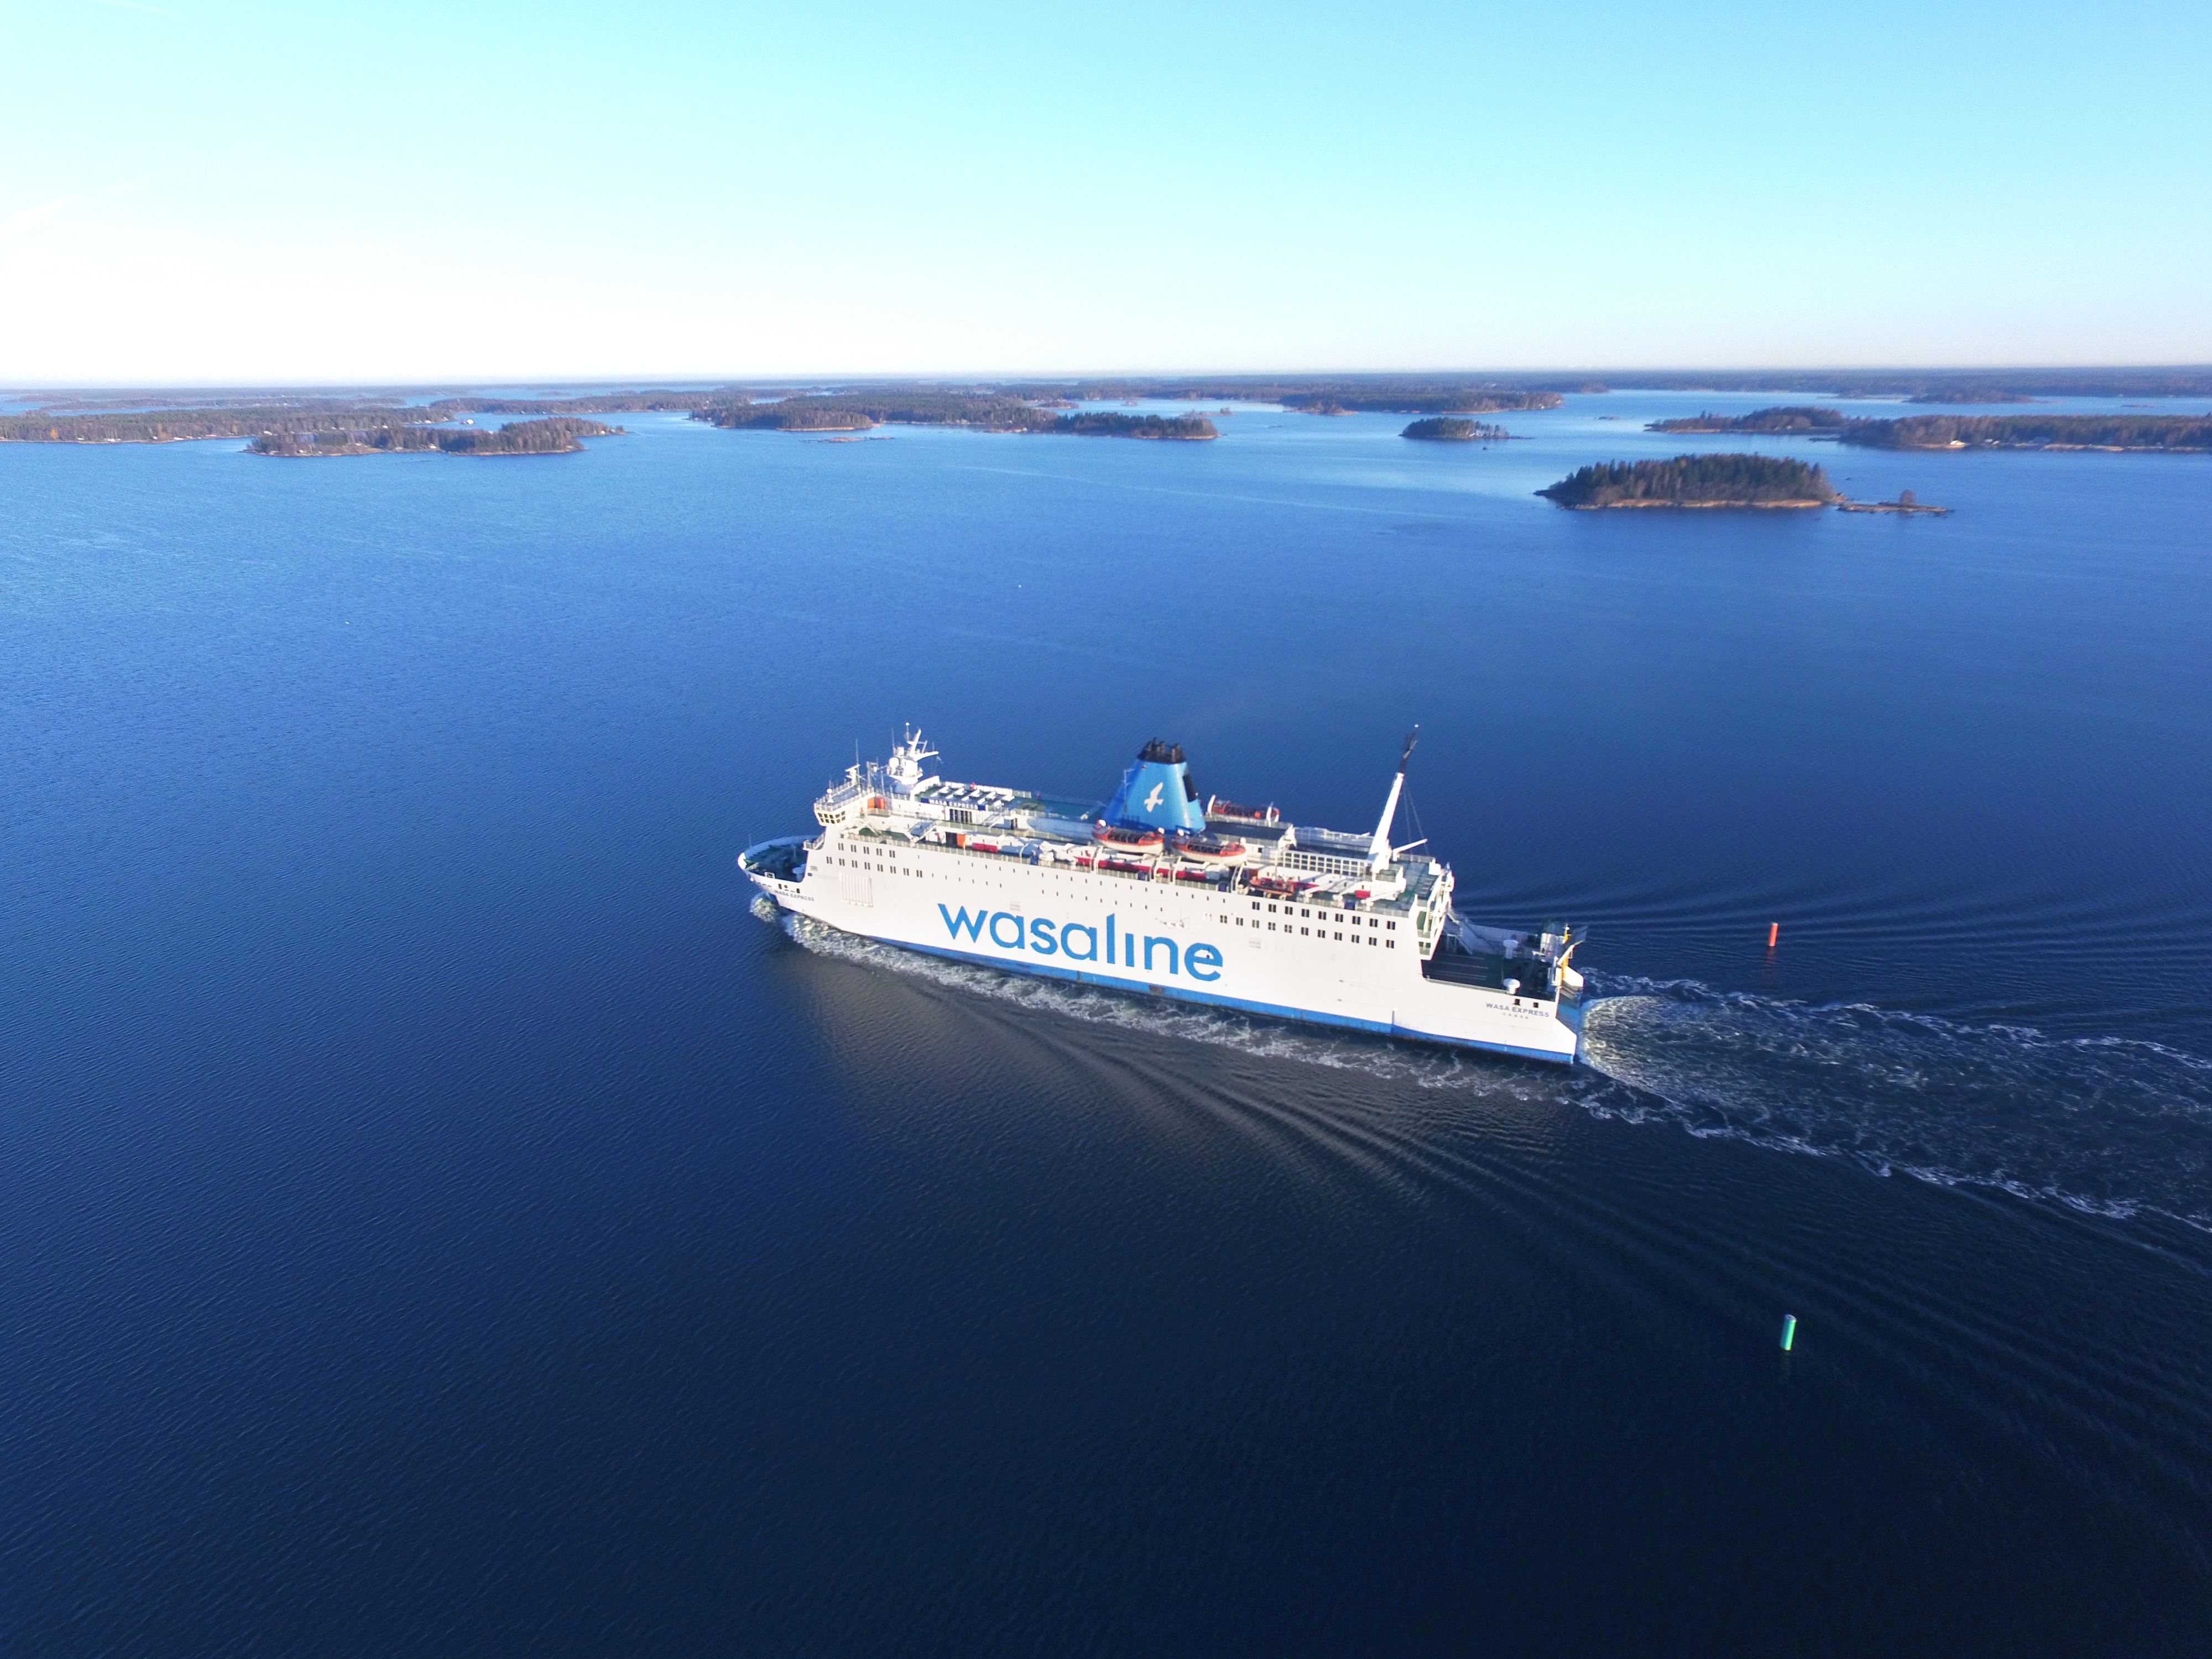 Ferry Umeå - Vasa in Finland